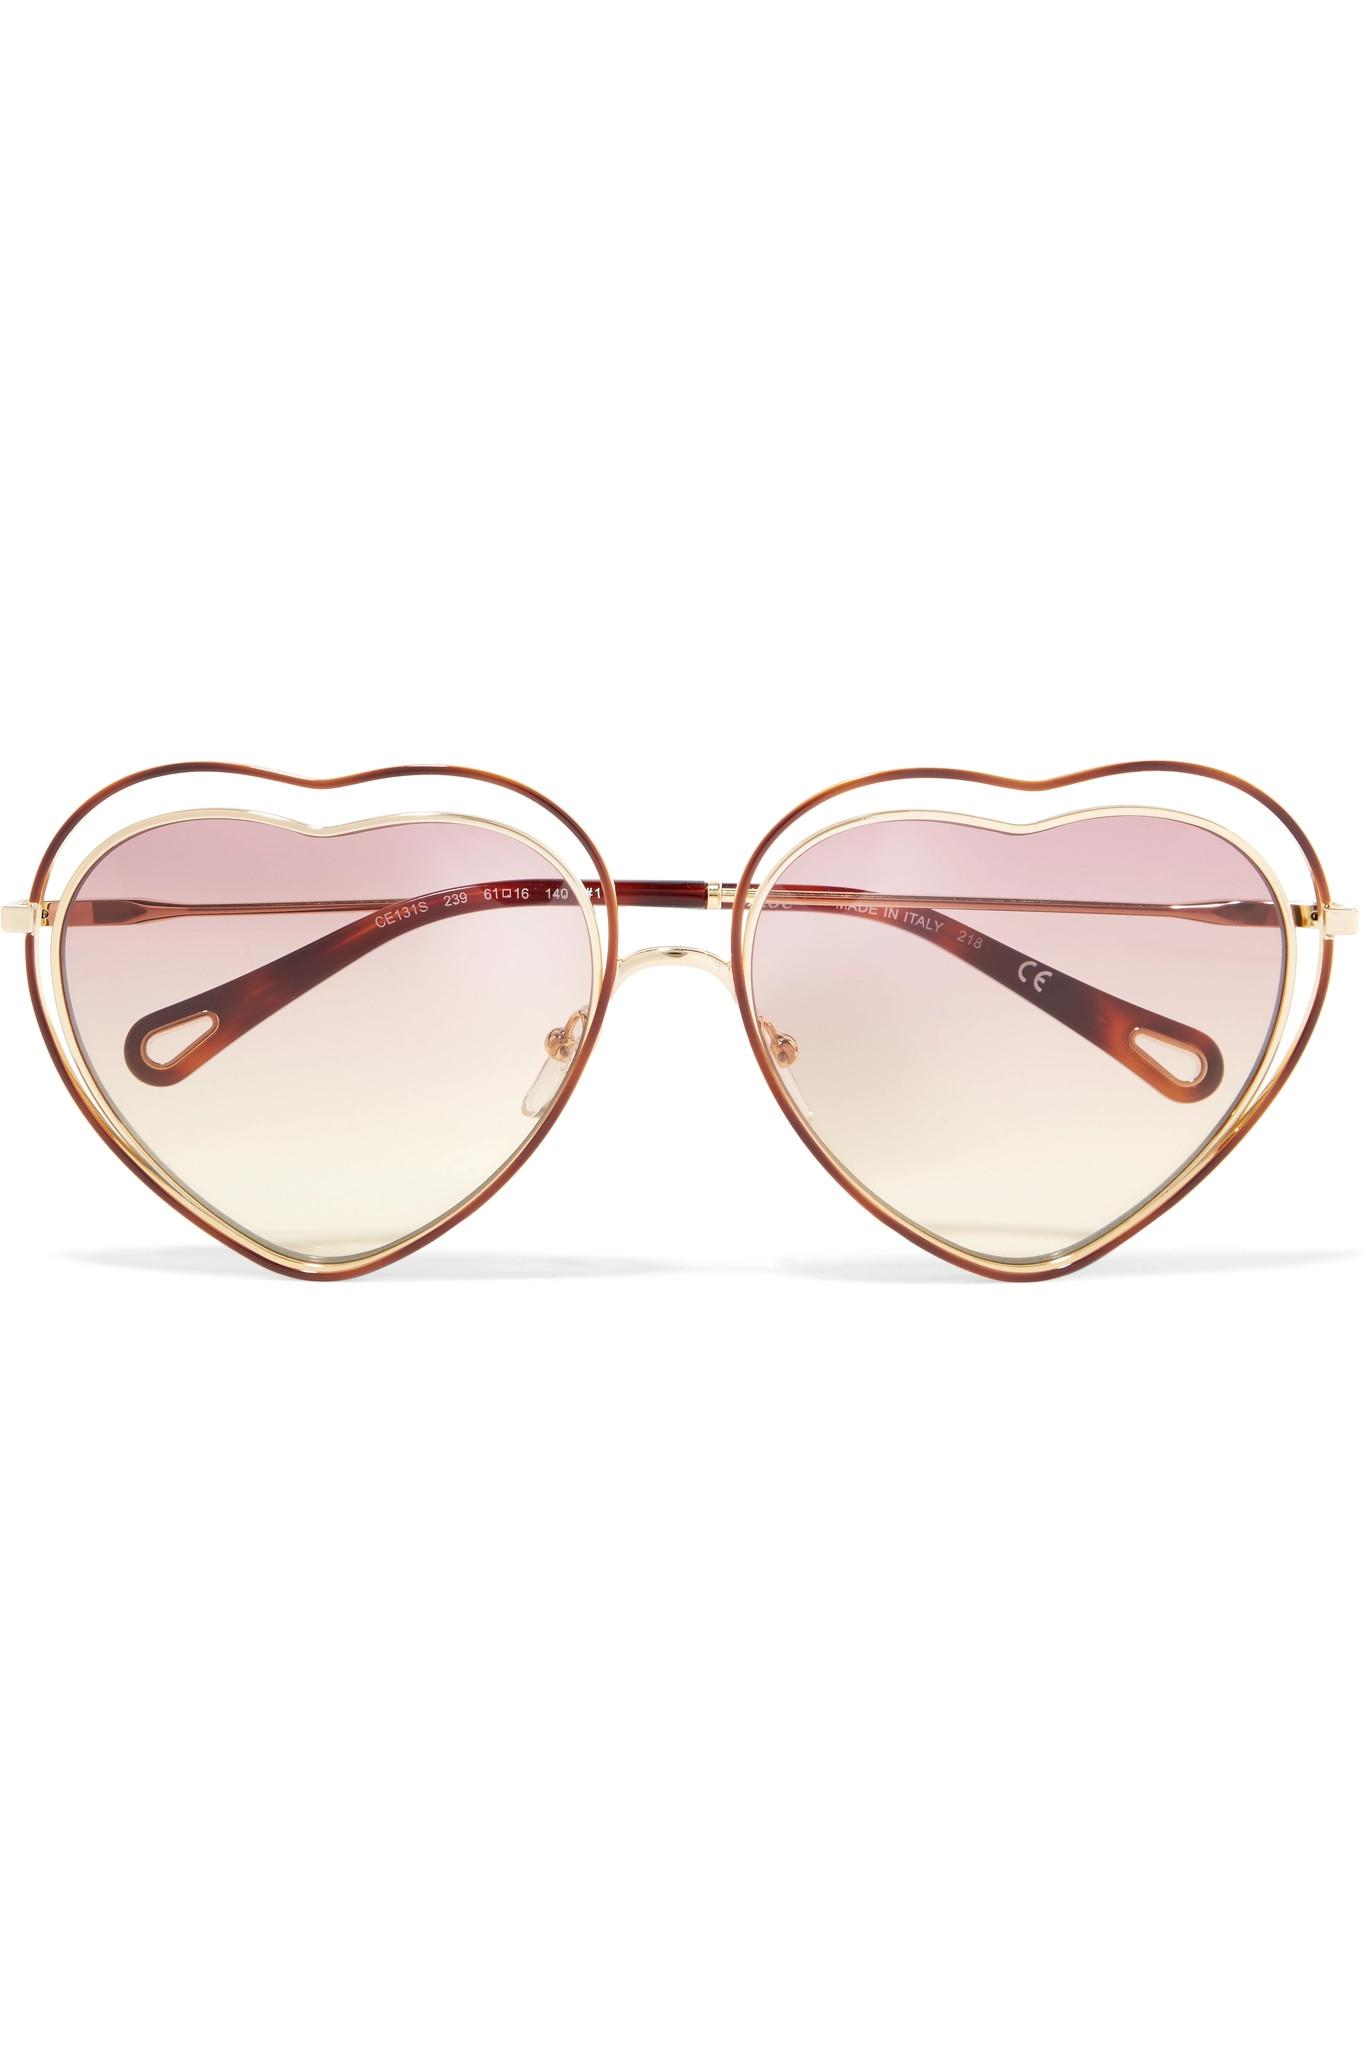 f8c288bb72 Chloé. Women s Metallic Poppy Love Heart-shaped Acetate And Gold-tone  Sunglasses